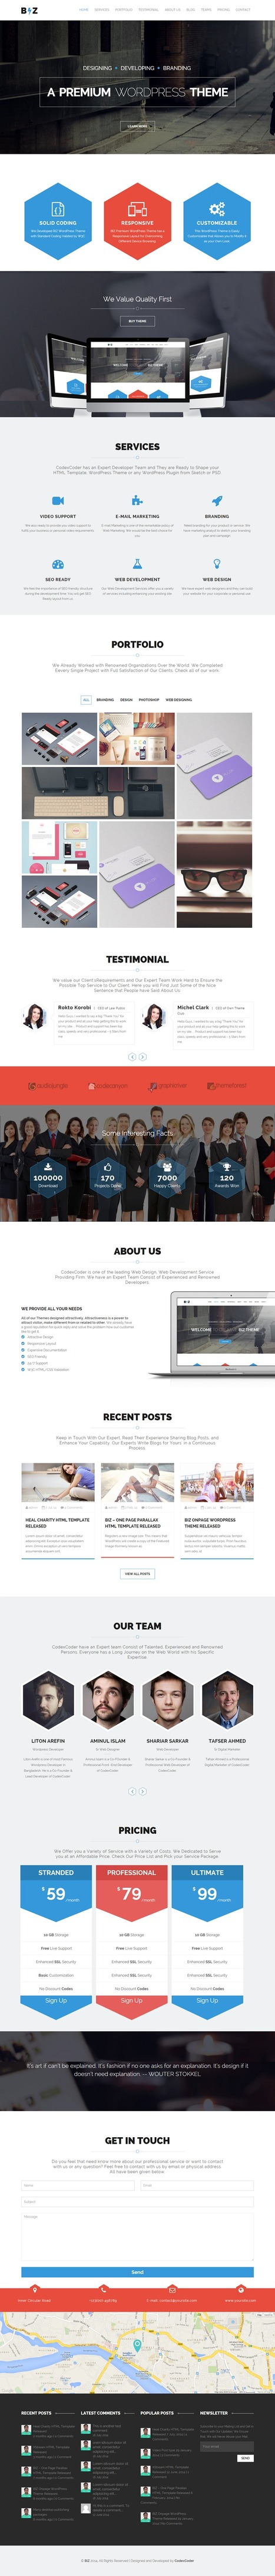 Biz Multipurpose Business and Corporate Theme - Download New Themes | To be a good Man | Scoop.it